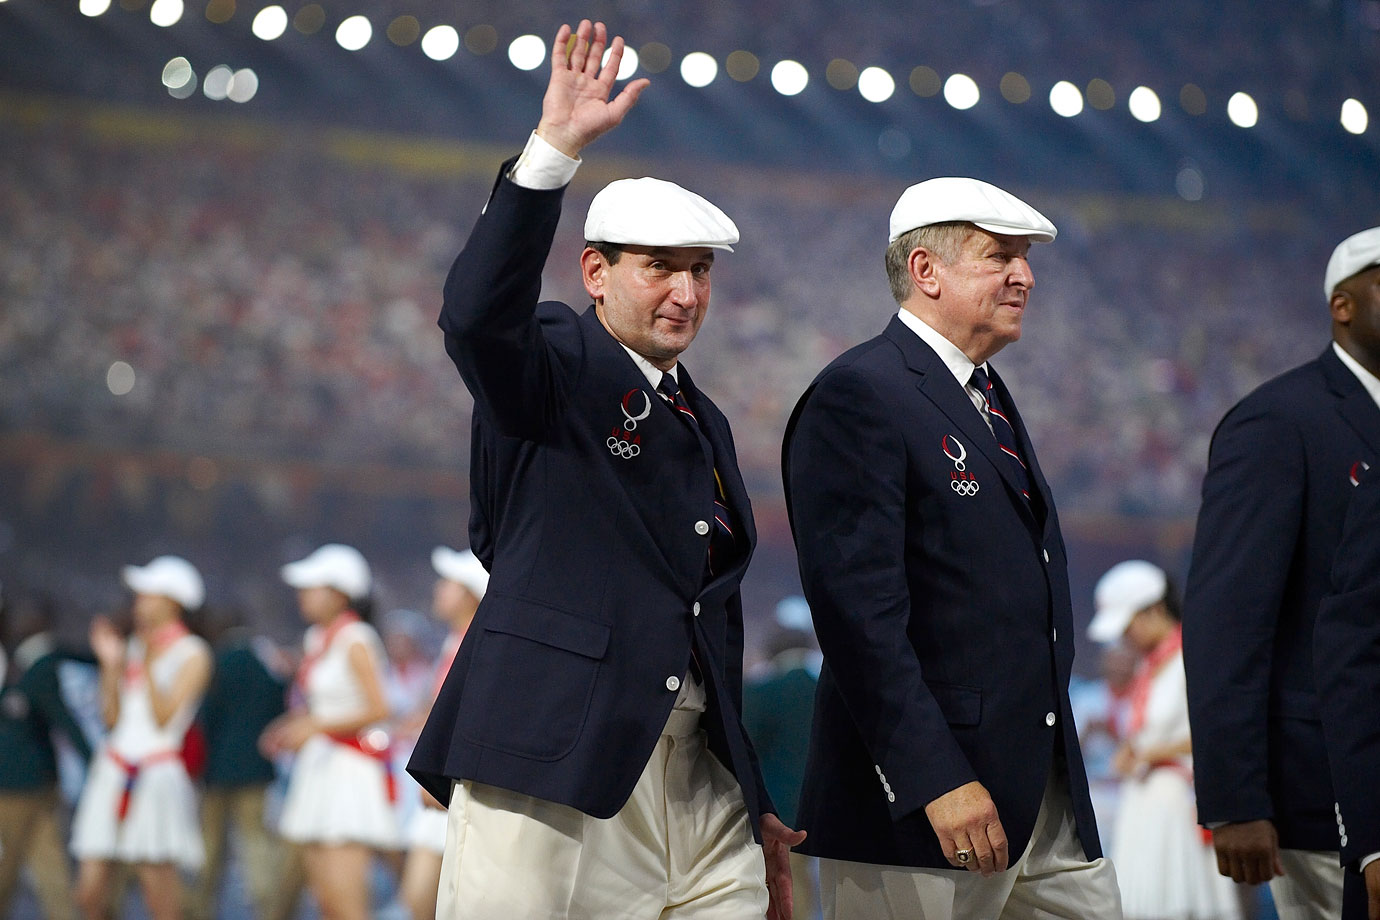 Mike Krzyzewski waves while walking with the Team USA delegation during athlete procession for the 2008 Summer Olympics at National Stadium in Beijing, China.  He would go on to coach the men's basketball team to gold.